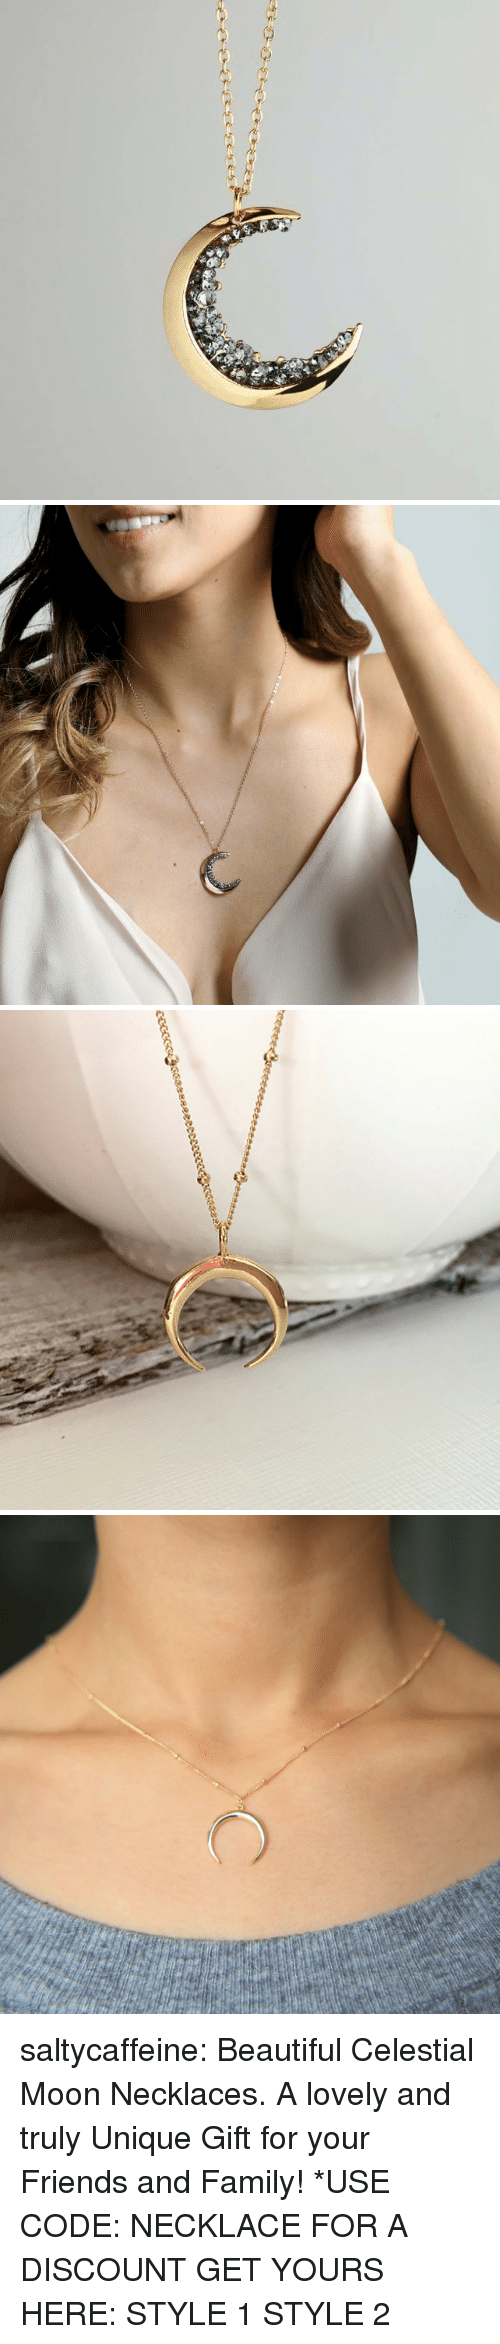 Beautiful, Family, and Friends: saltycaffeine:  Beautiful Celestial Moon Necklaces. A lovely and truly Unique Gift for your Friends and Family! *USE CODE: NECKLACE FOR A DISCOUNT GET YOURS HERE:  STYLE 1  STYLE 2